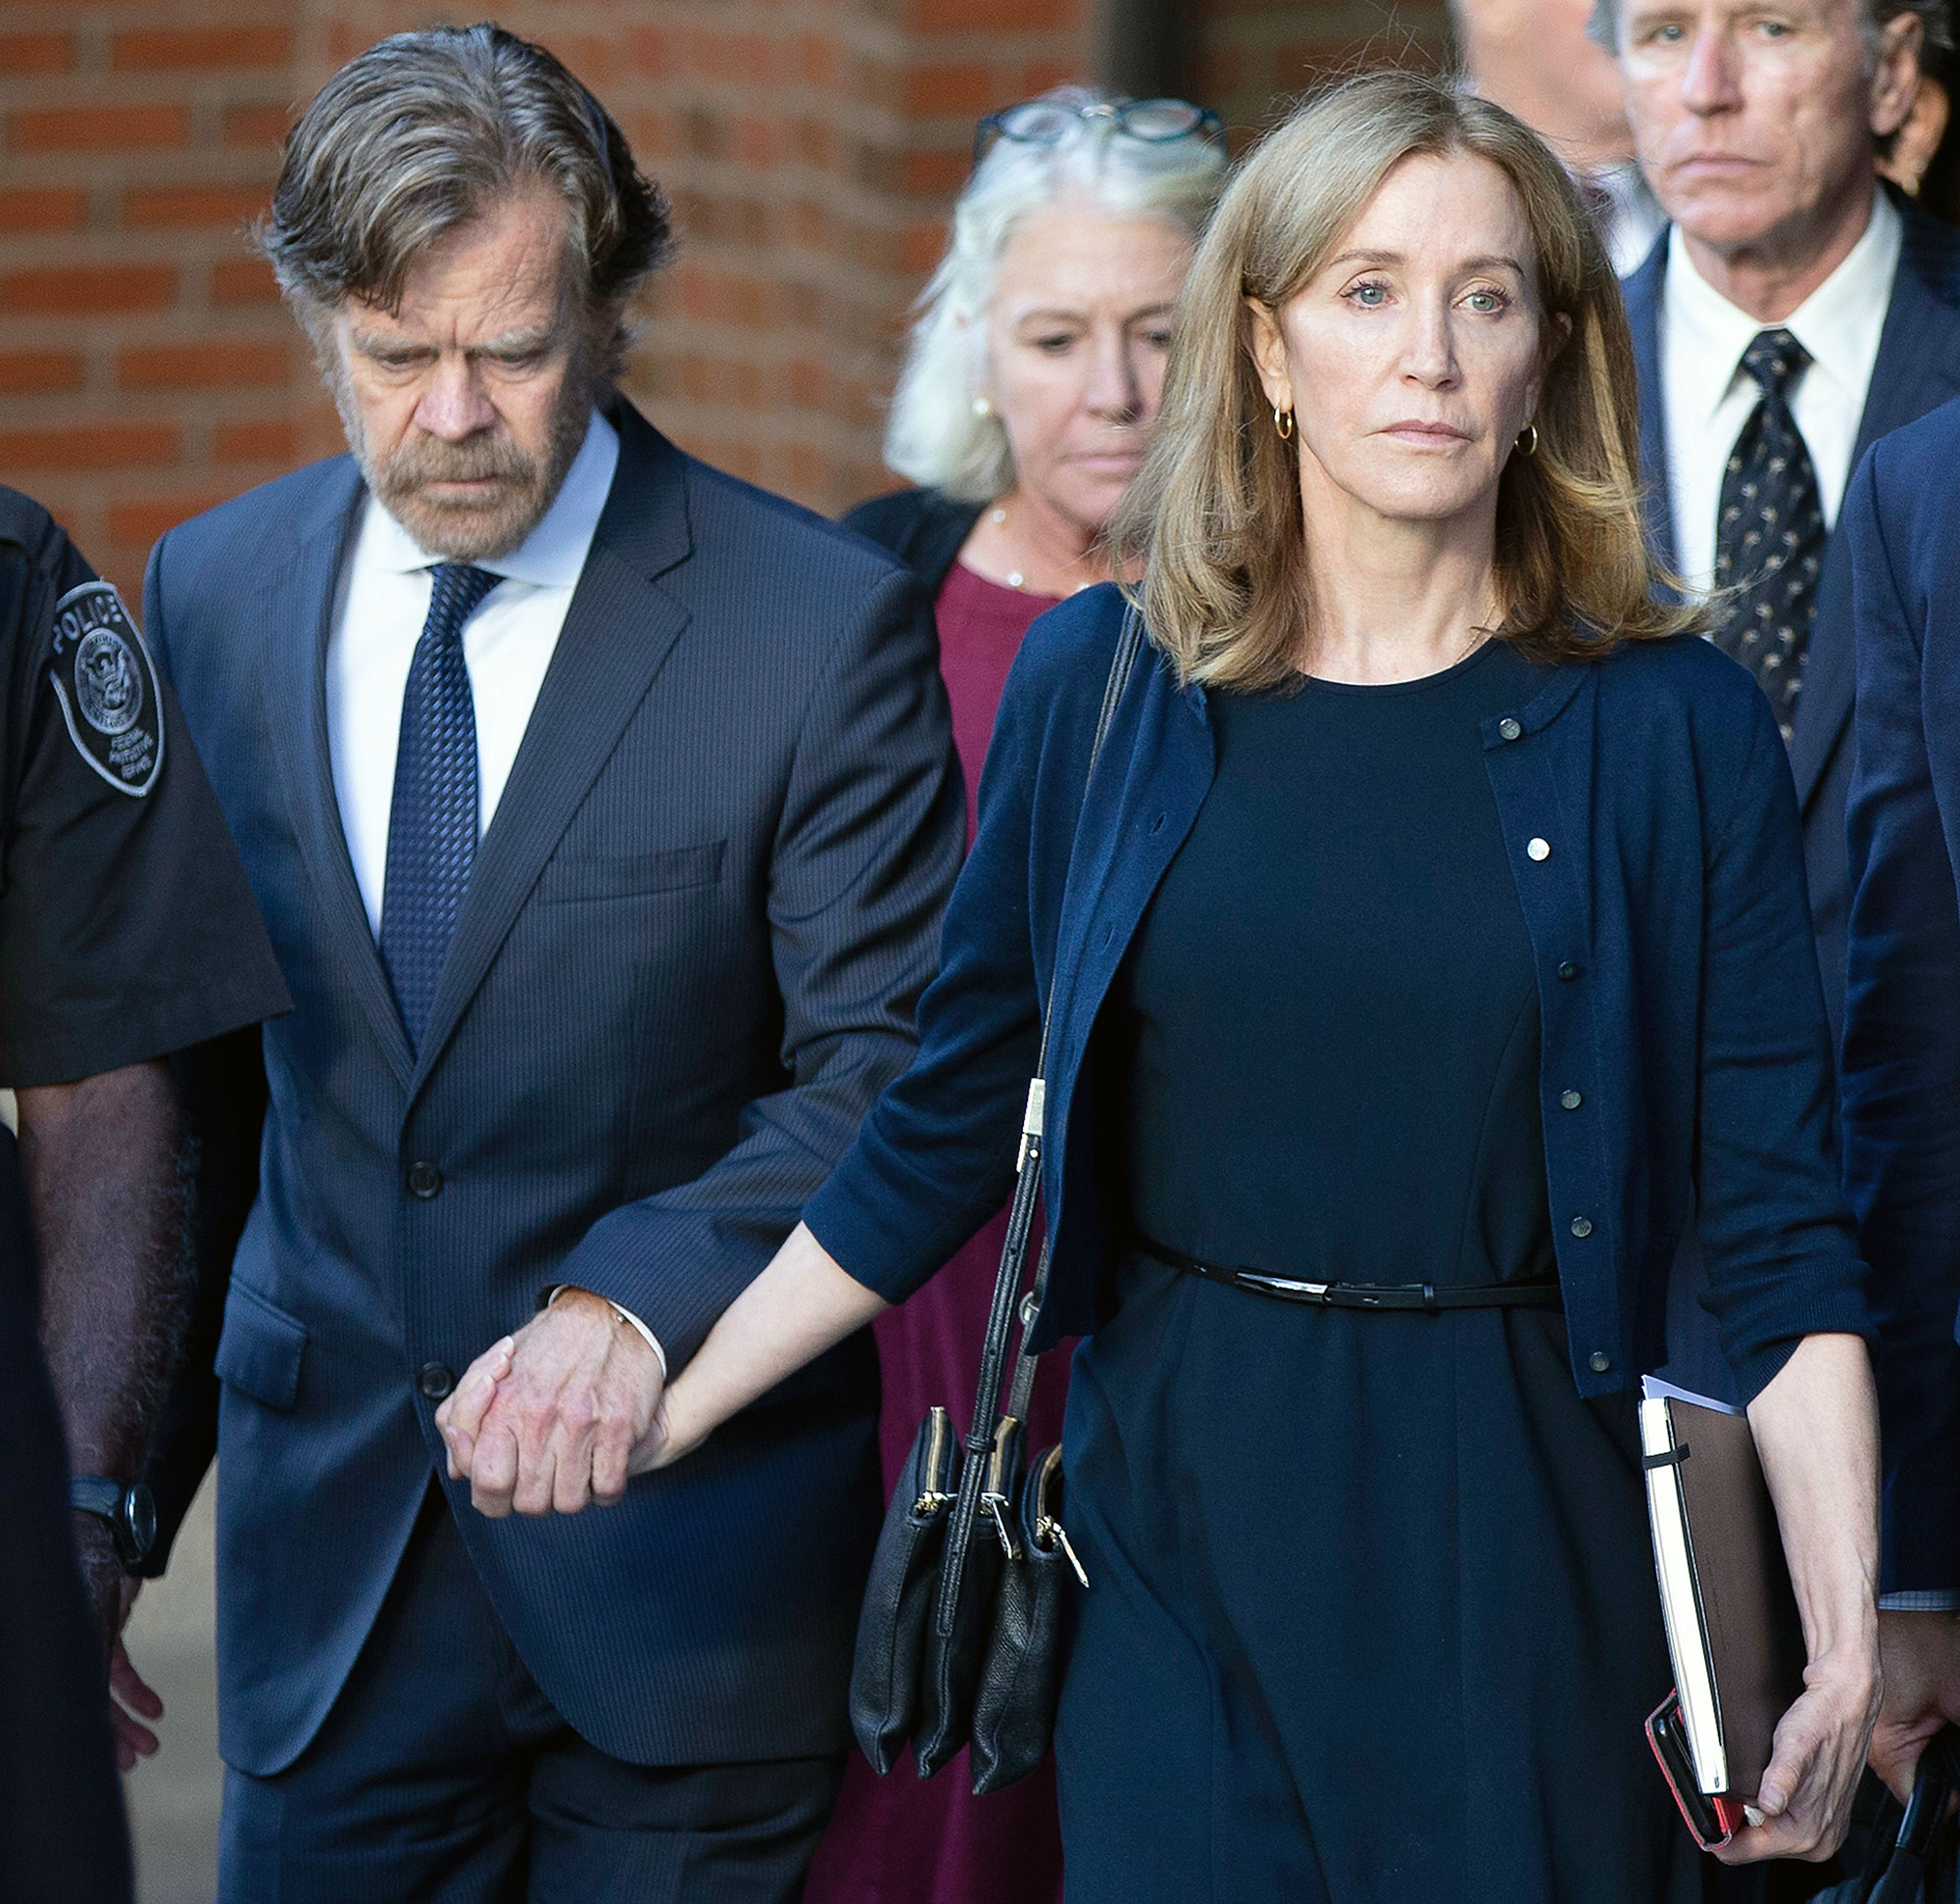 William H Macy and Felicity Huffman Out Court Felicity Huffman Reports to California Prison for 14-Day Sentence